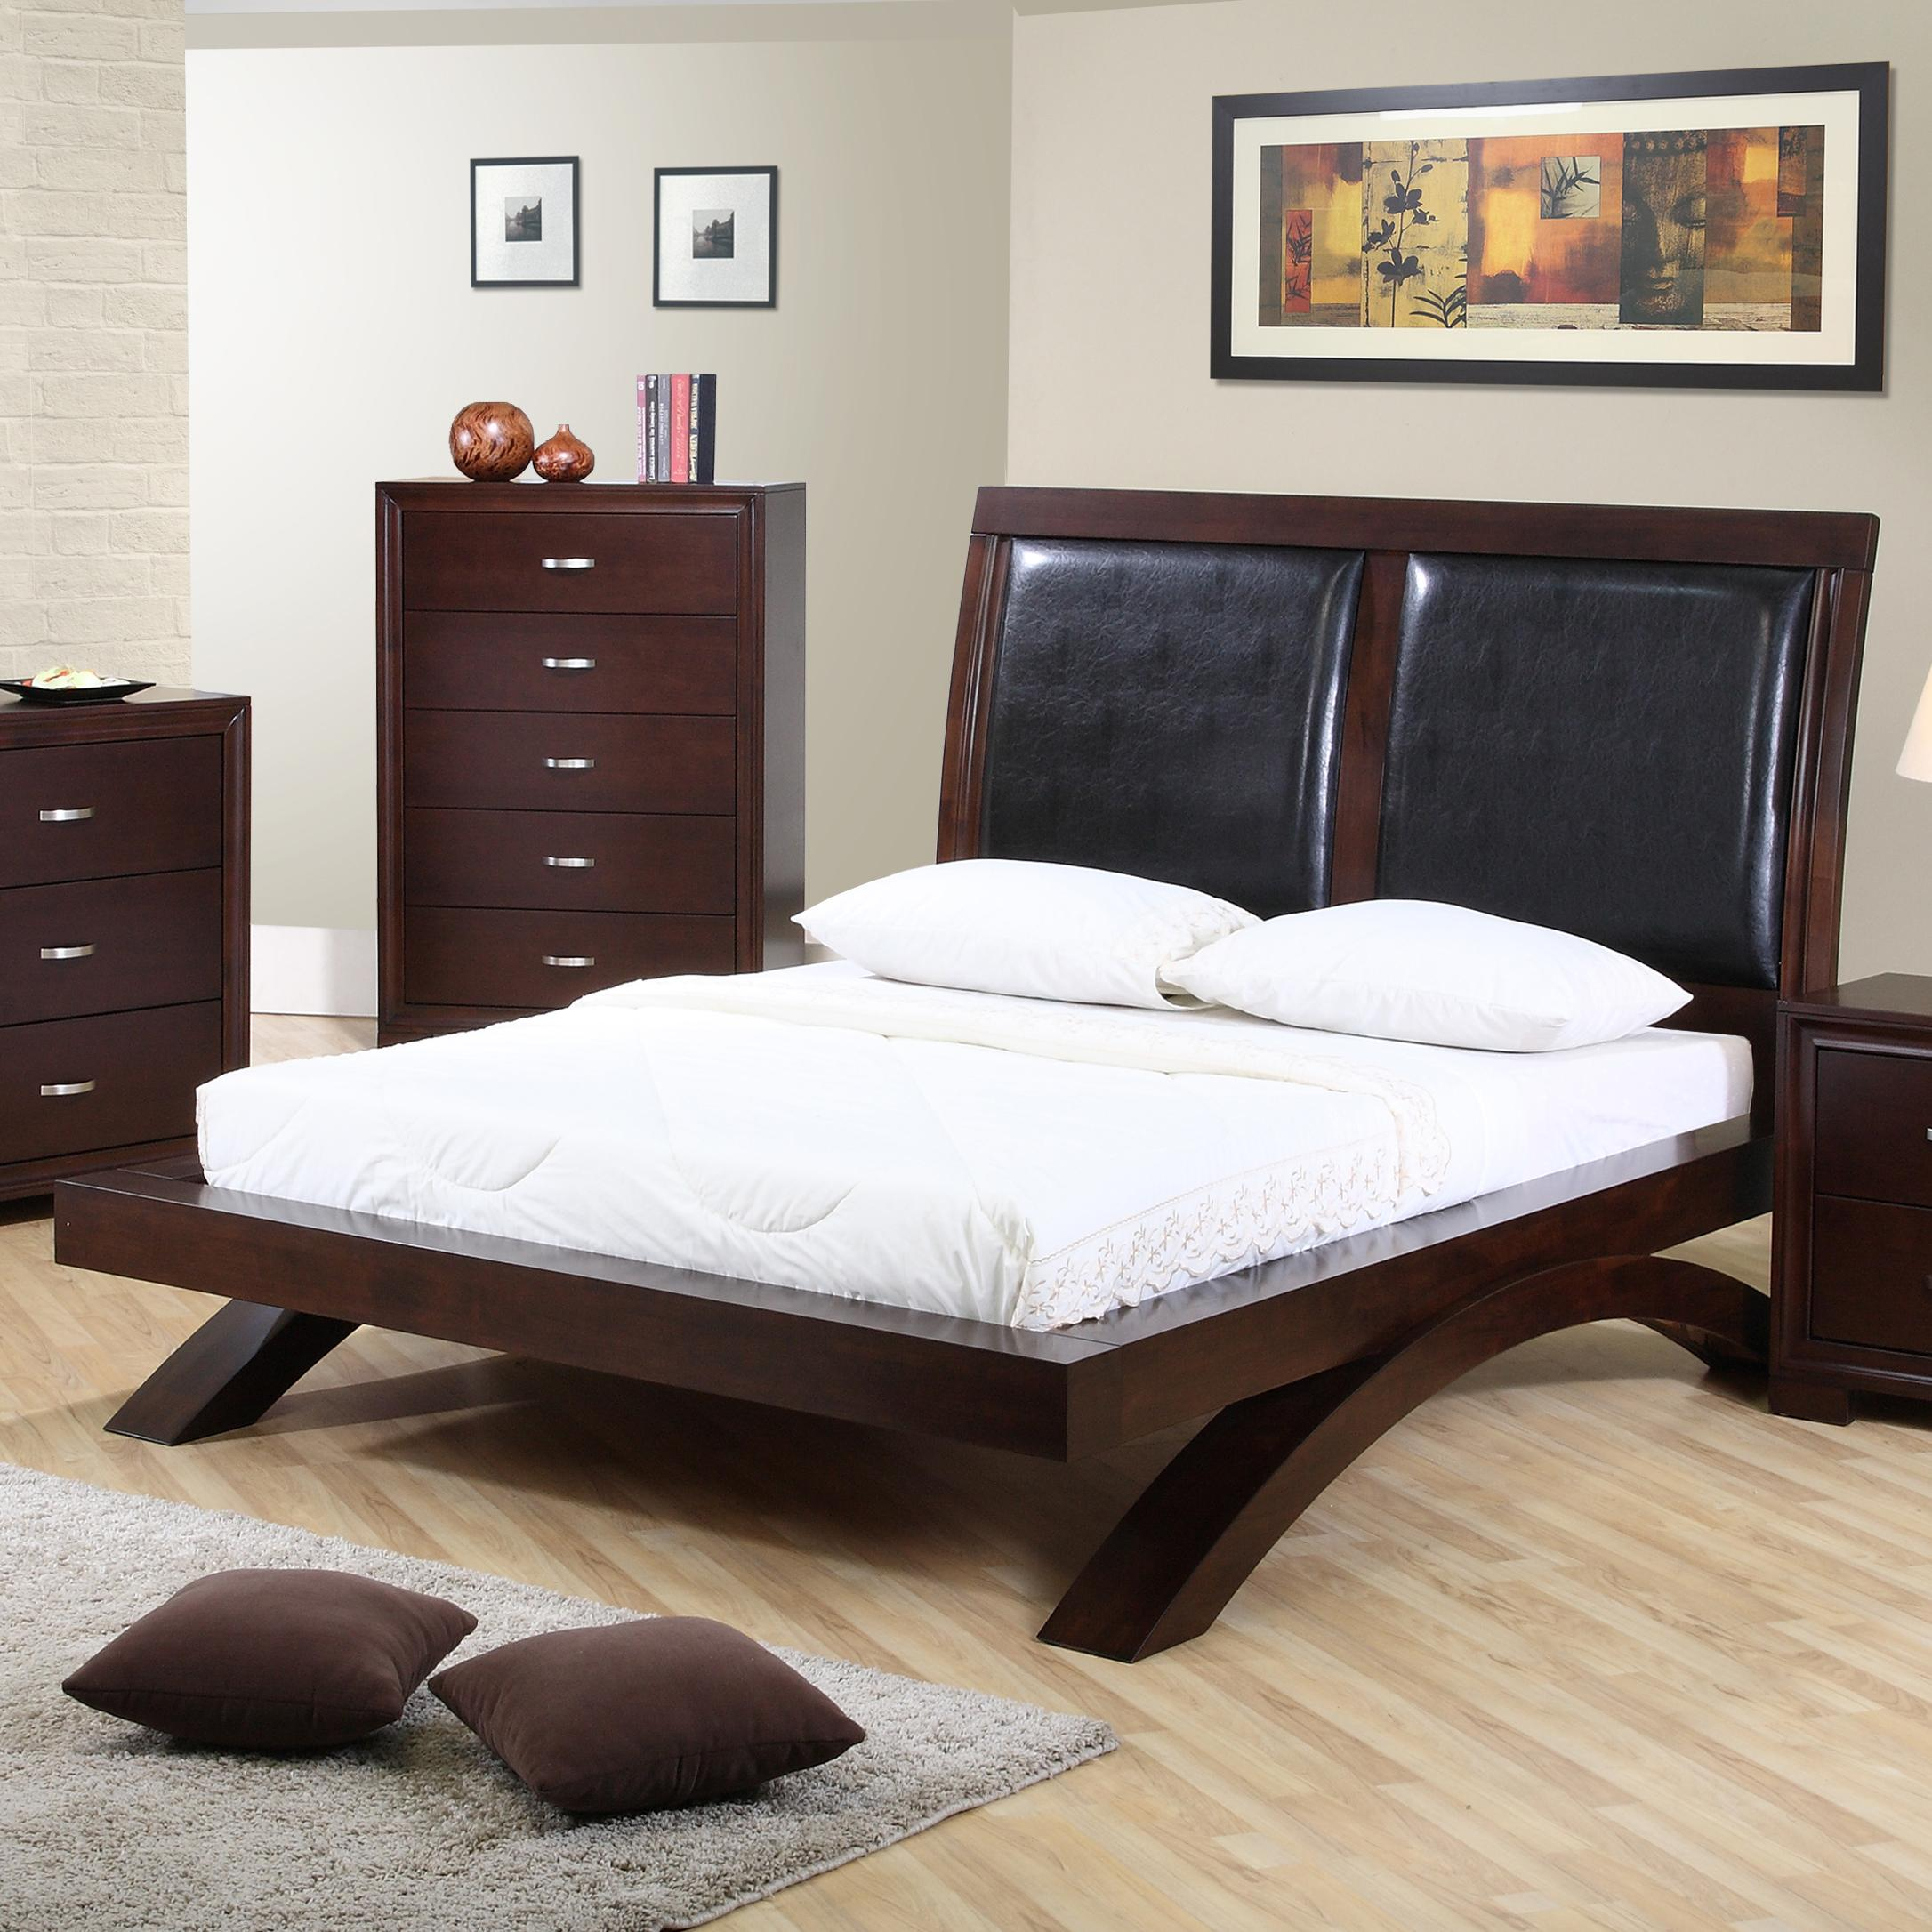 elements international raven queen faux leather headboard platform bed item number rv222qb